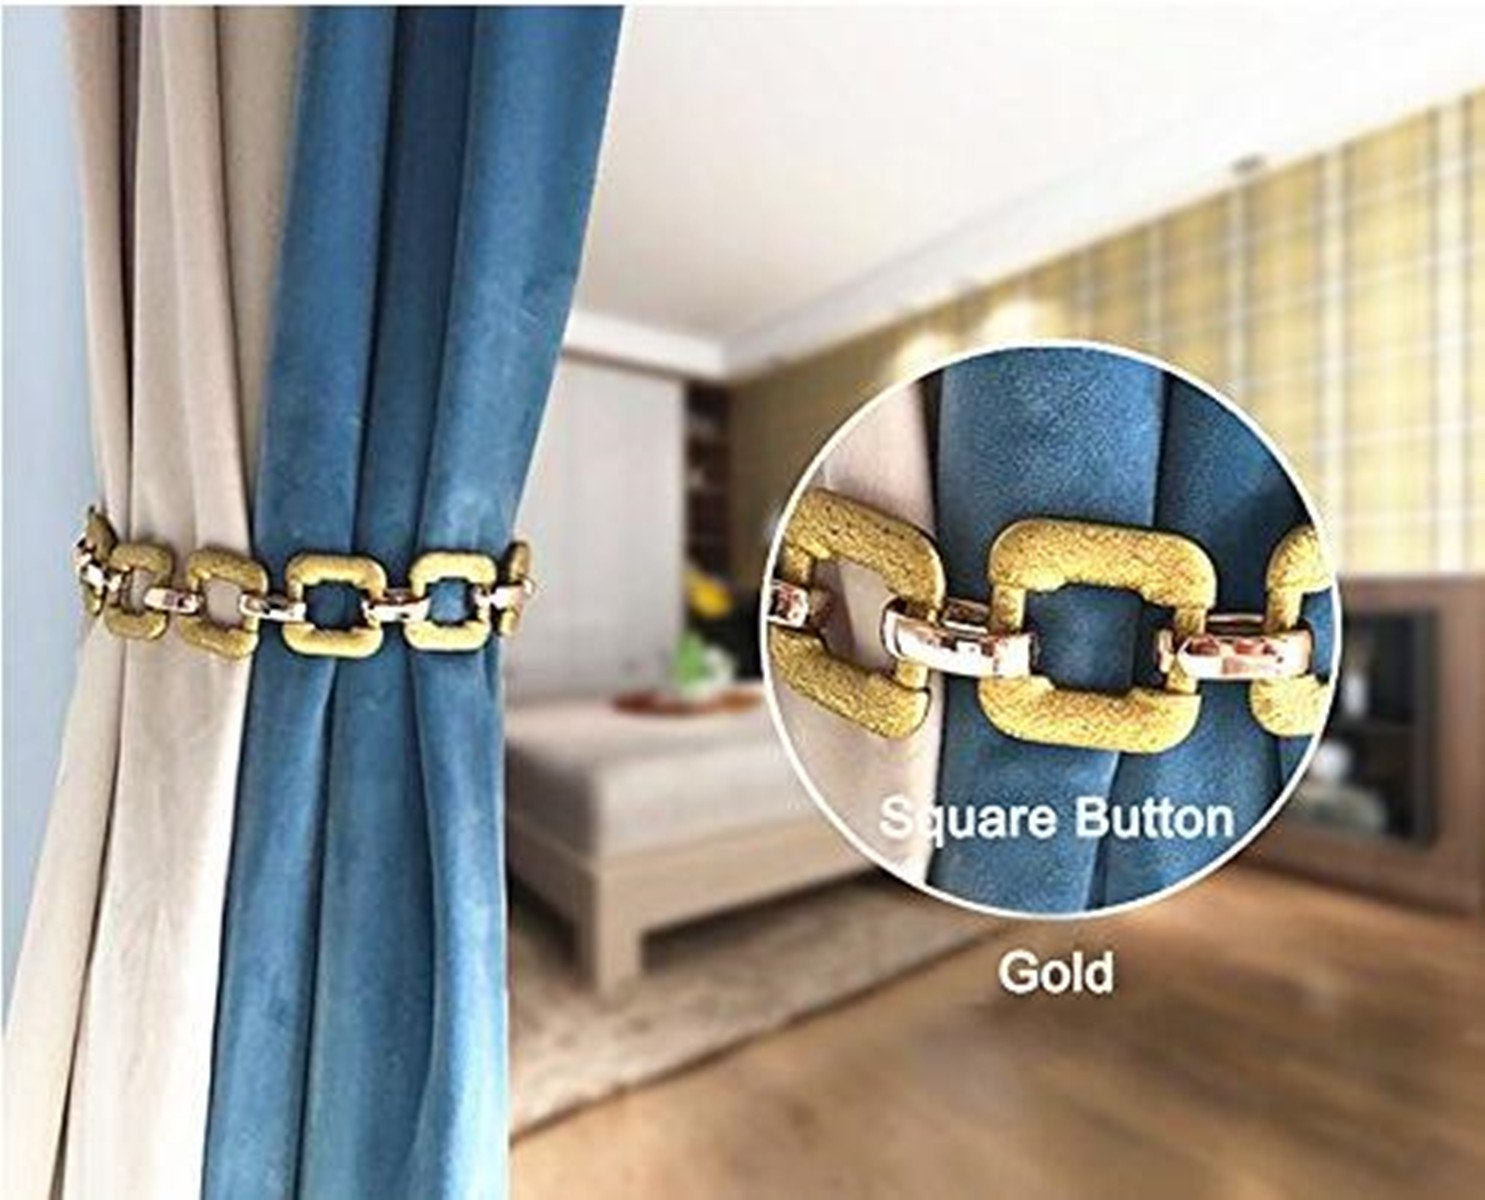 IHClink Curtain Tiebacks Window Holdbacks Metal Curtain Ties Home Office Decorative Drapes Ring Holders Buckles for Drapes 2 Pieces(Square buckle style- Gold)